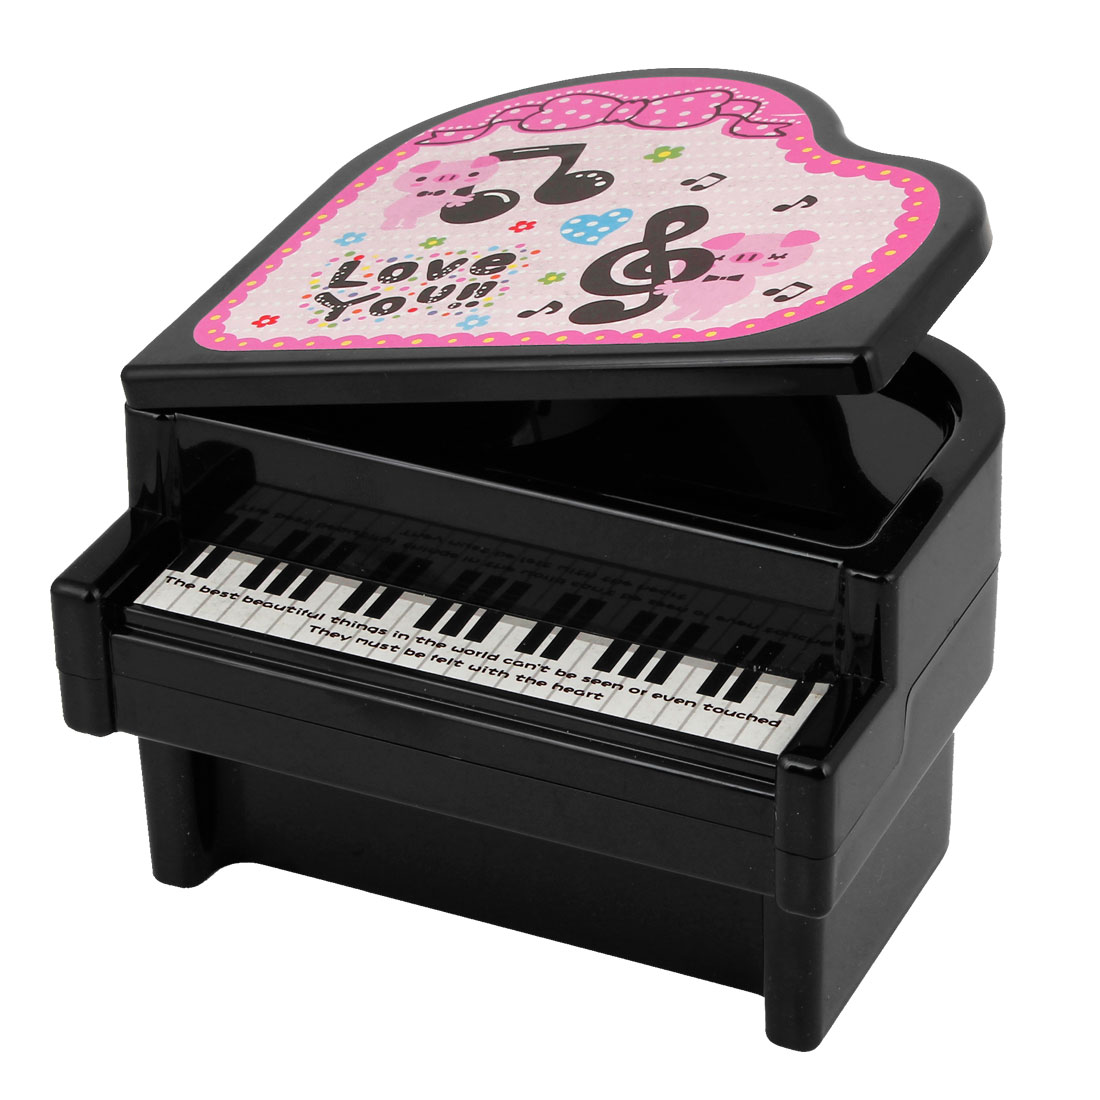 Household Black Plastic Piano Design Coin Saving Piggy Bank Holder